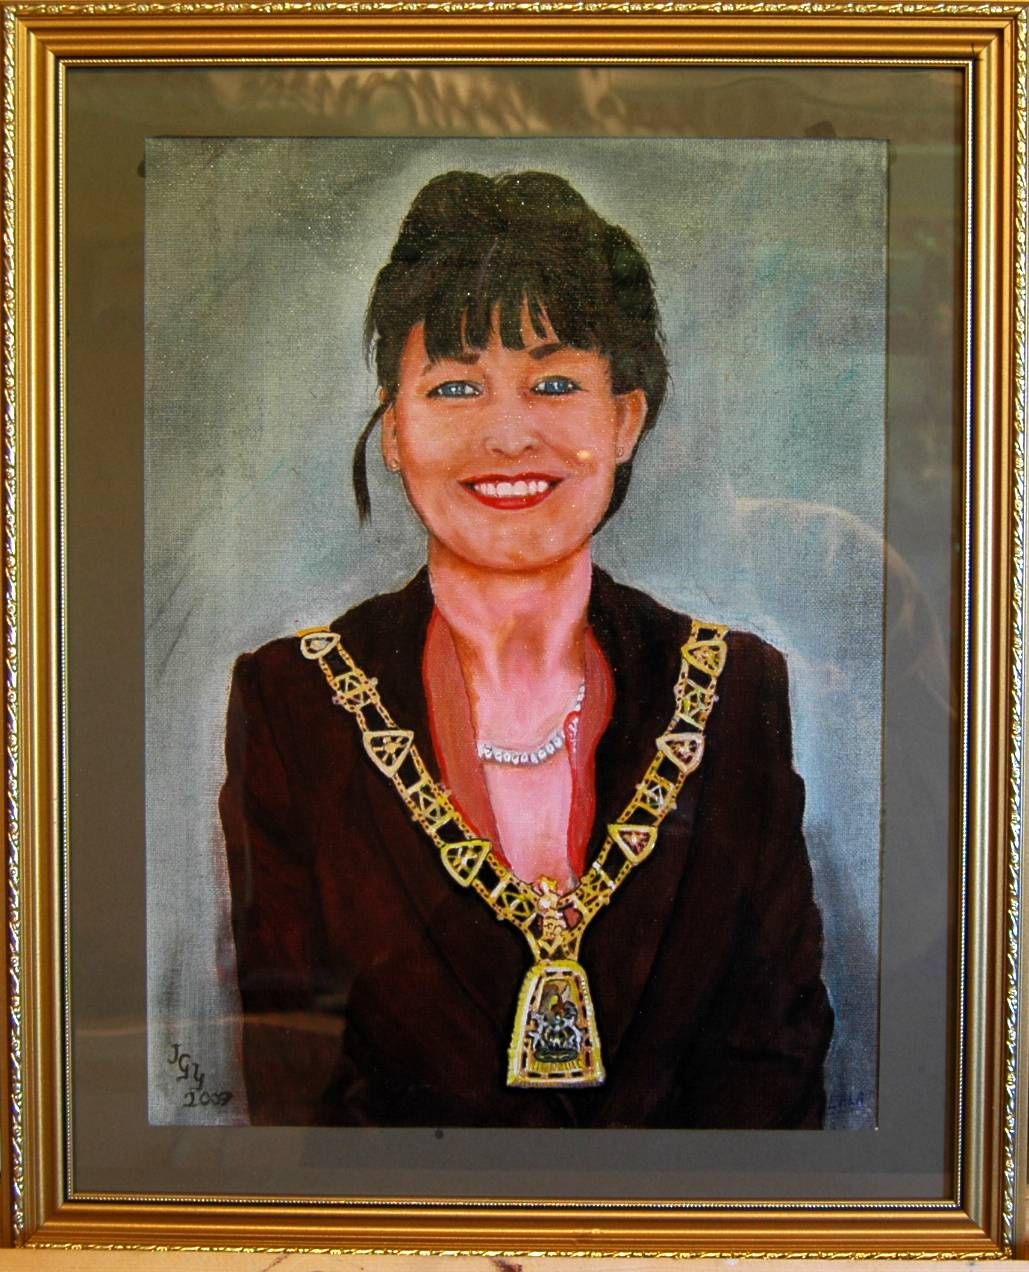 mayor-of-bromley-pauline-tuneclif